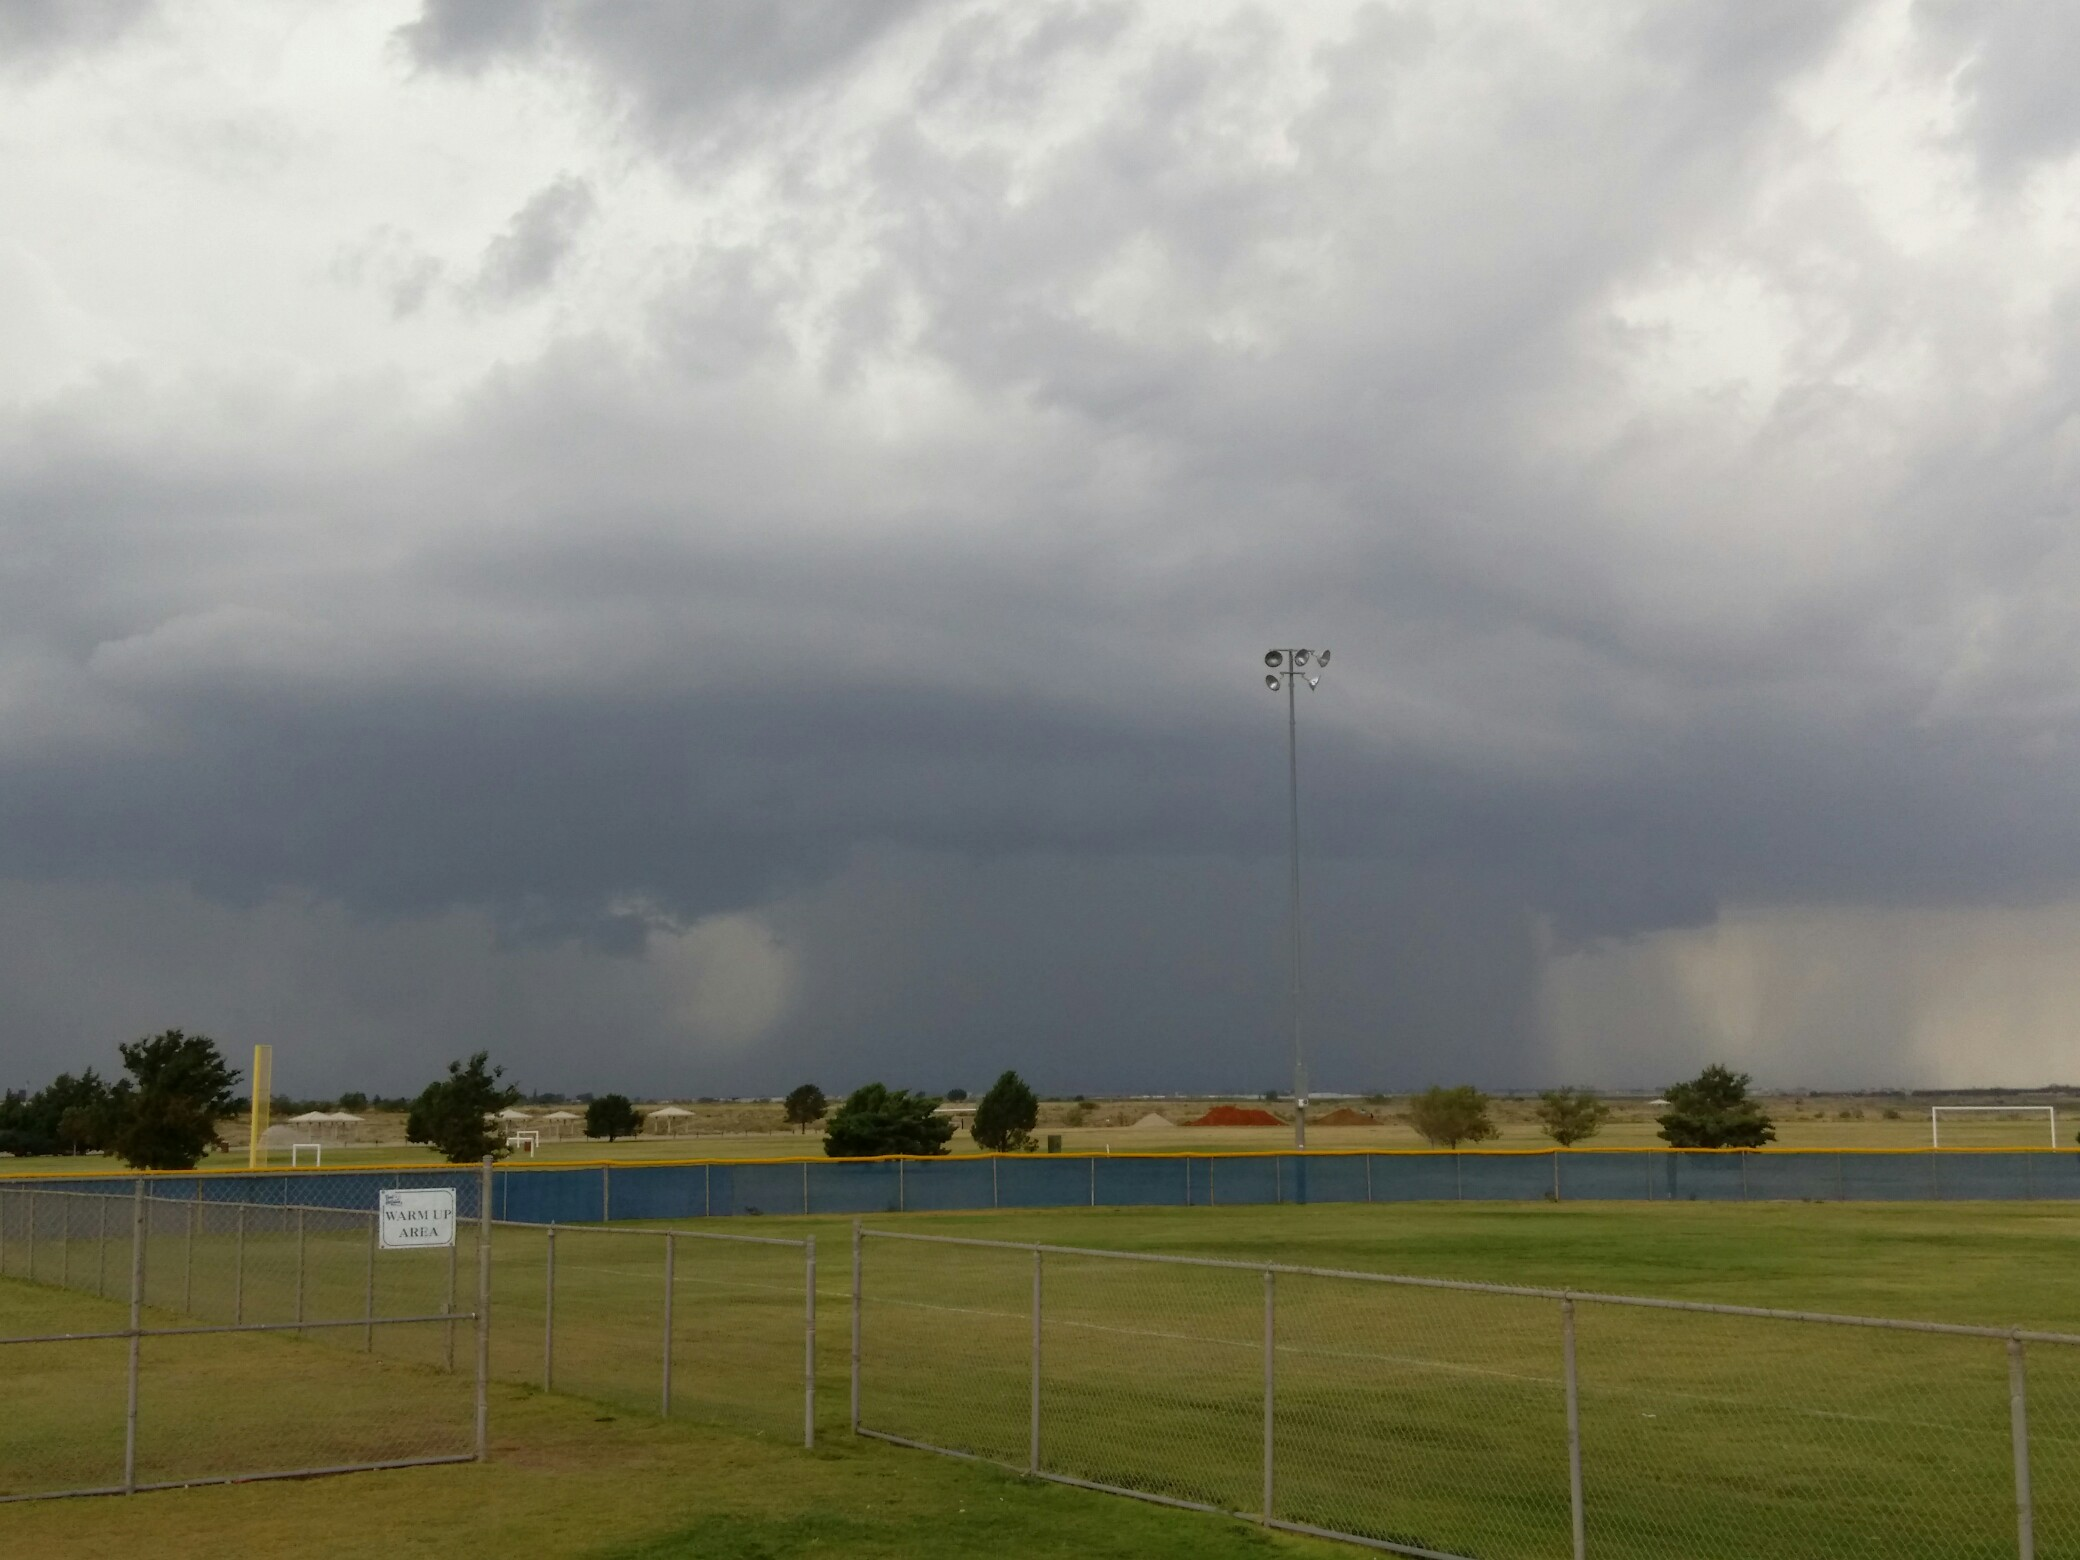 Photo showing a thunderstorm with heavy rain near Shallowater, Texas